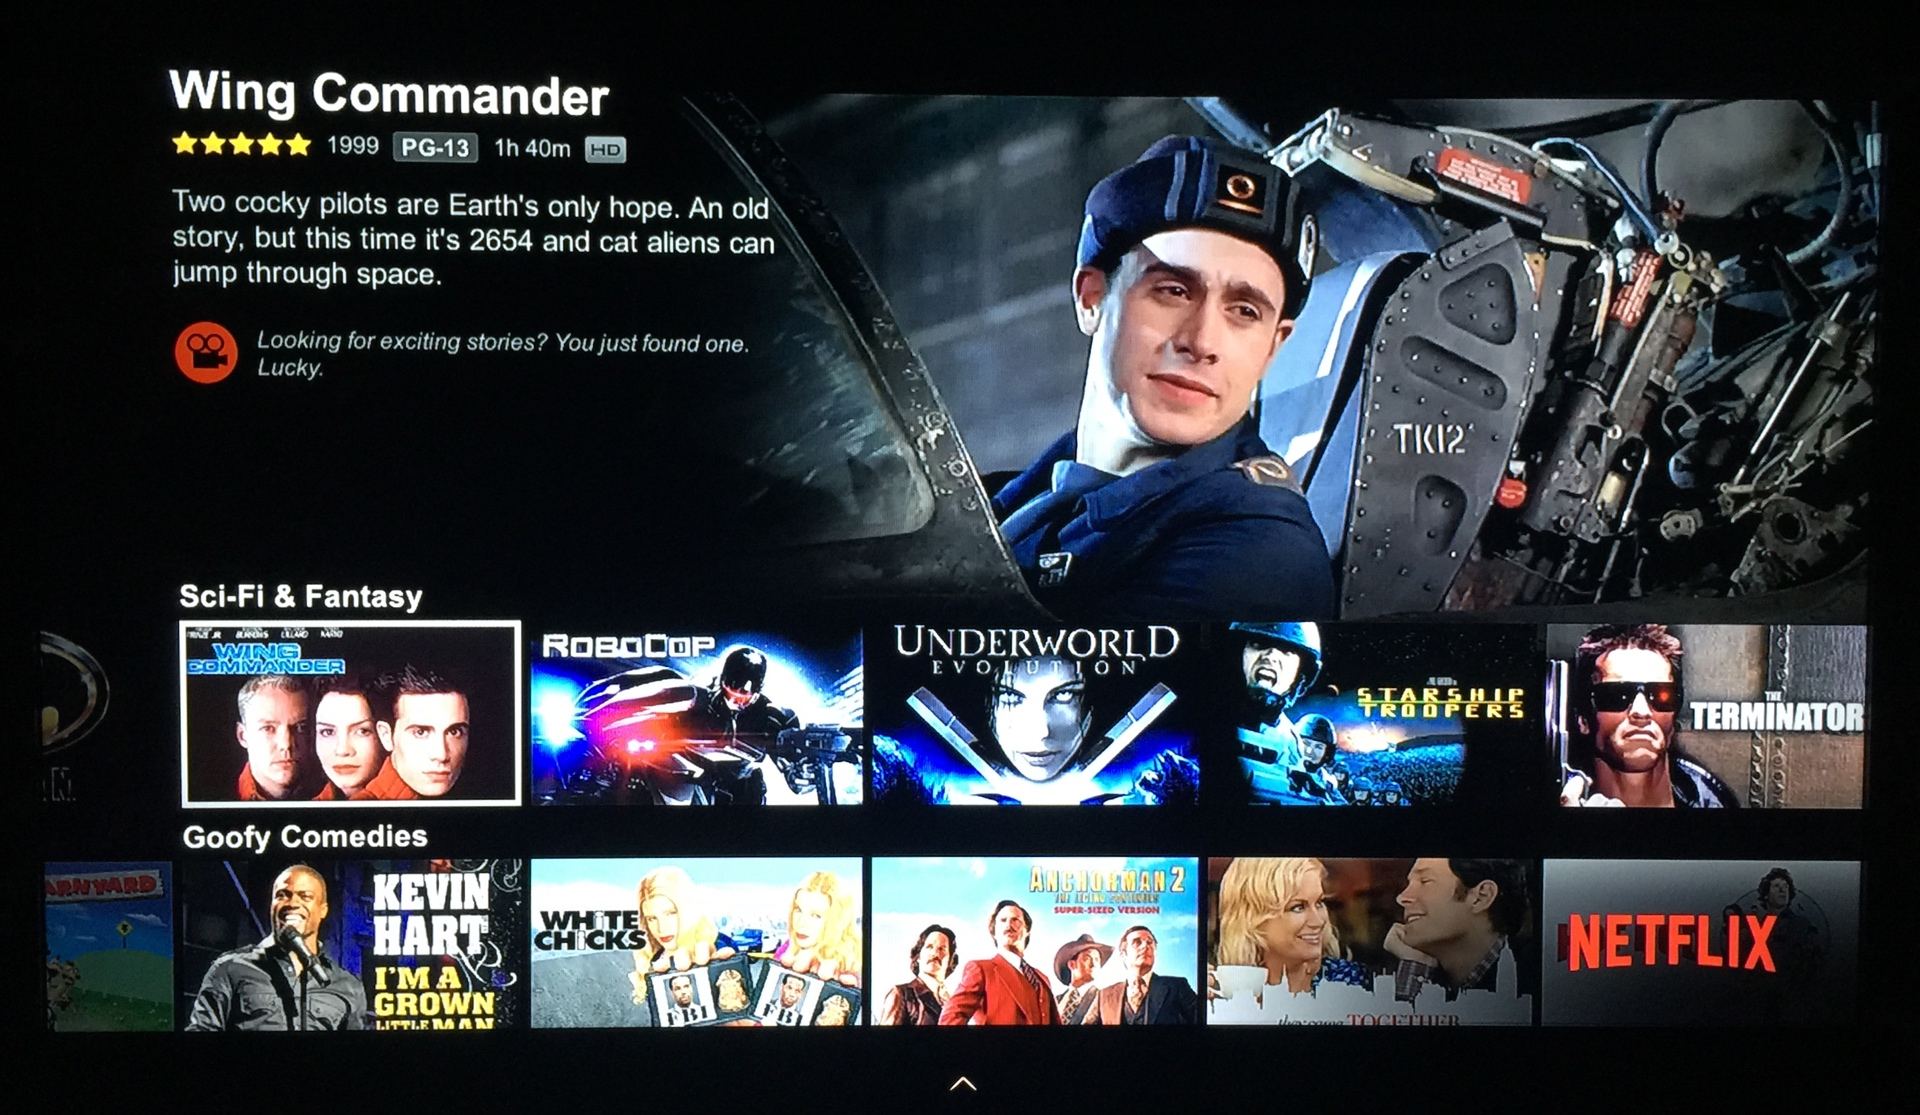 Wing Commander S A Hit On Netflix August 7 2015 Wing Commander Cic